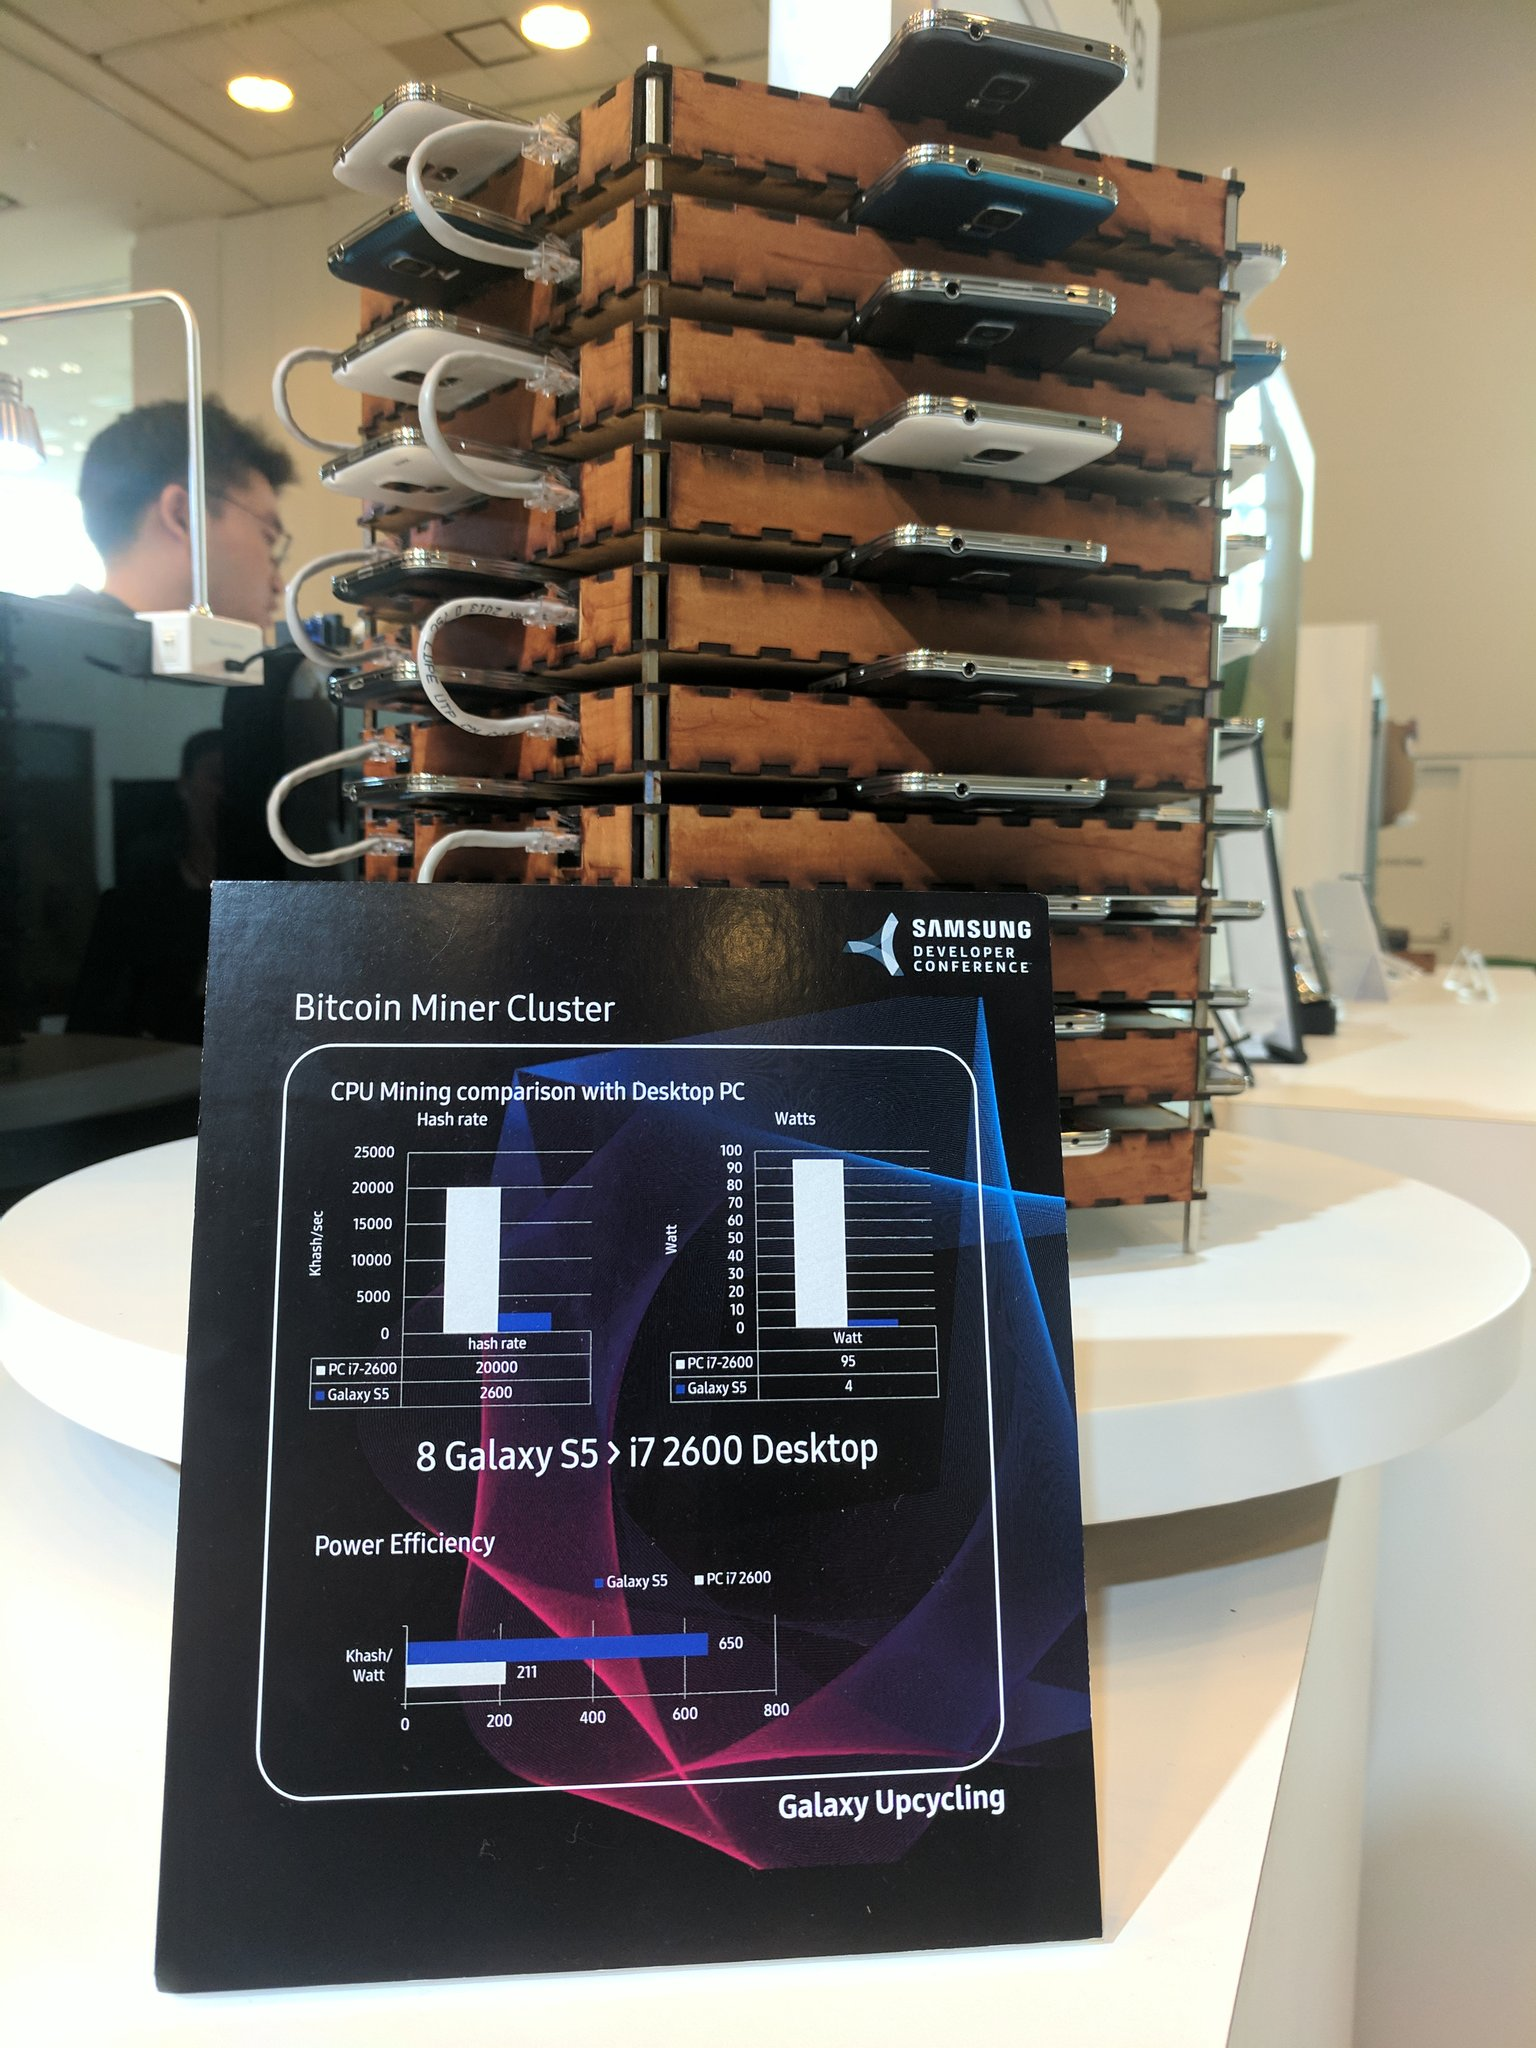 Samsung Made a Bitcoin Mining Rig Out of 40 Old Galaxy S5s - VICE